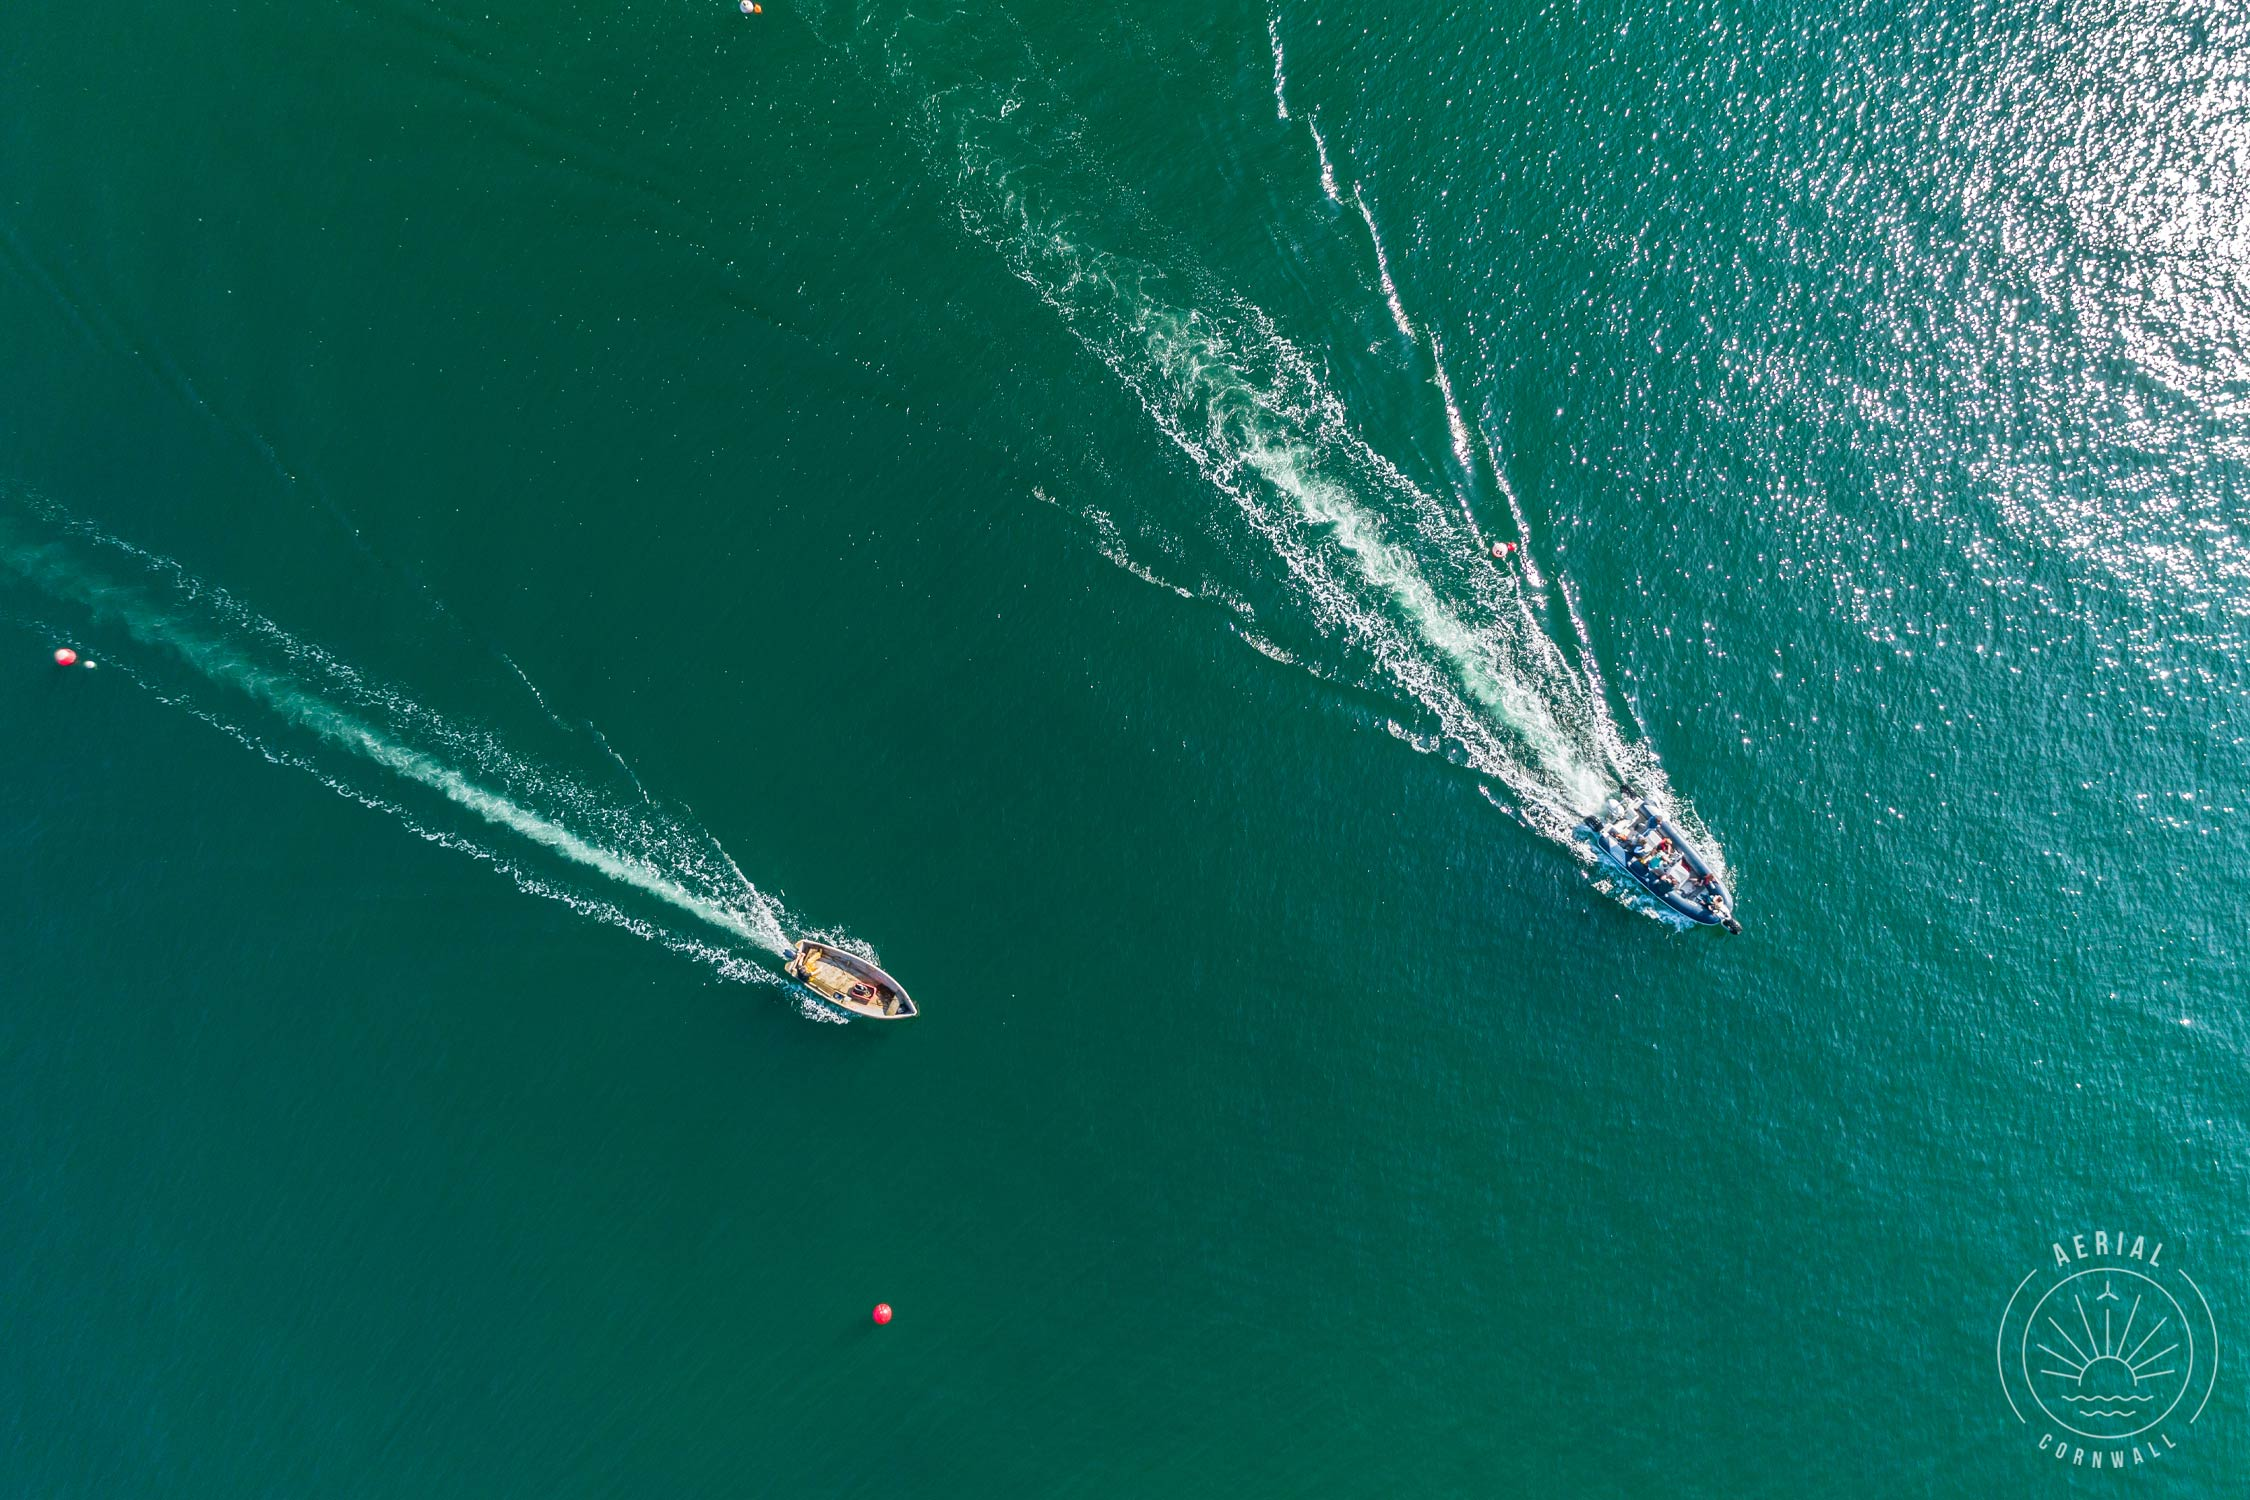 St Mawes speedboats